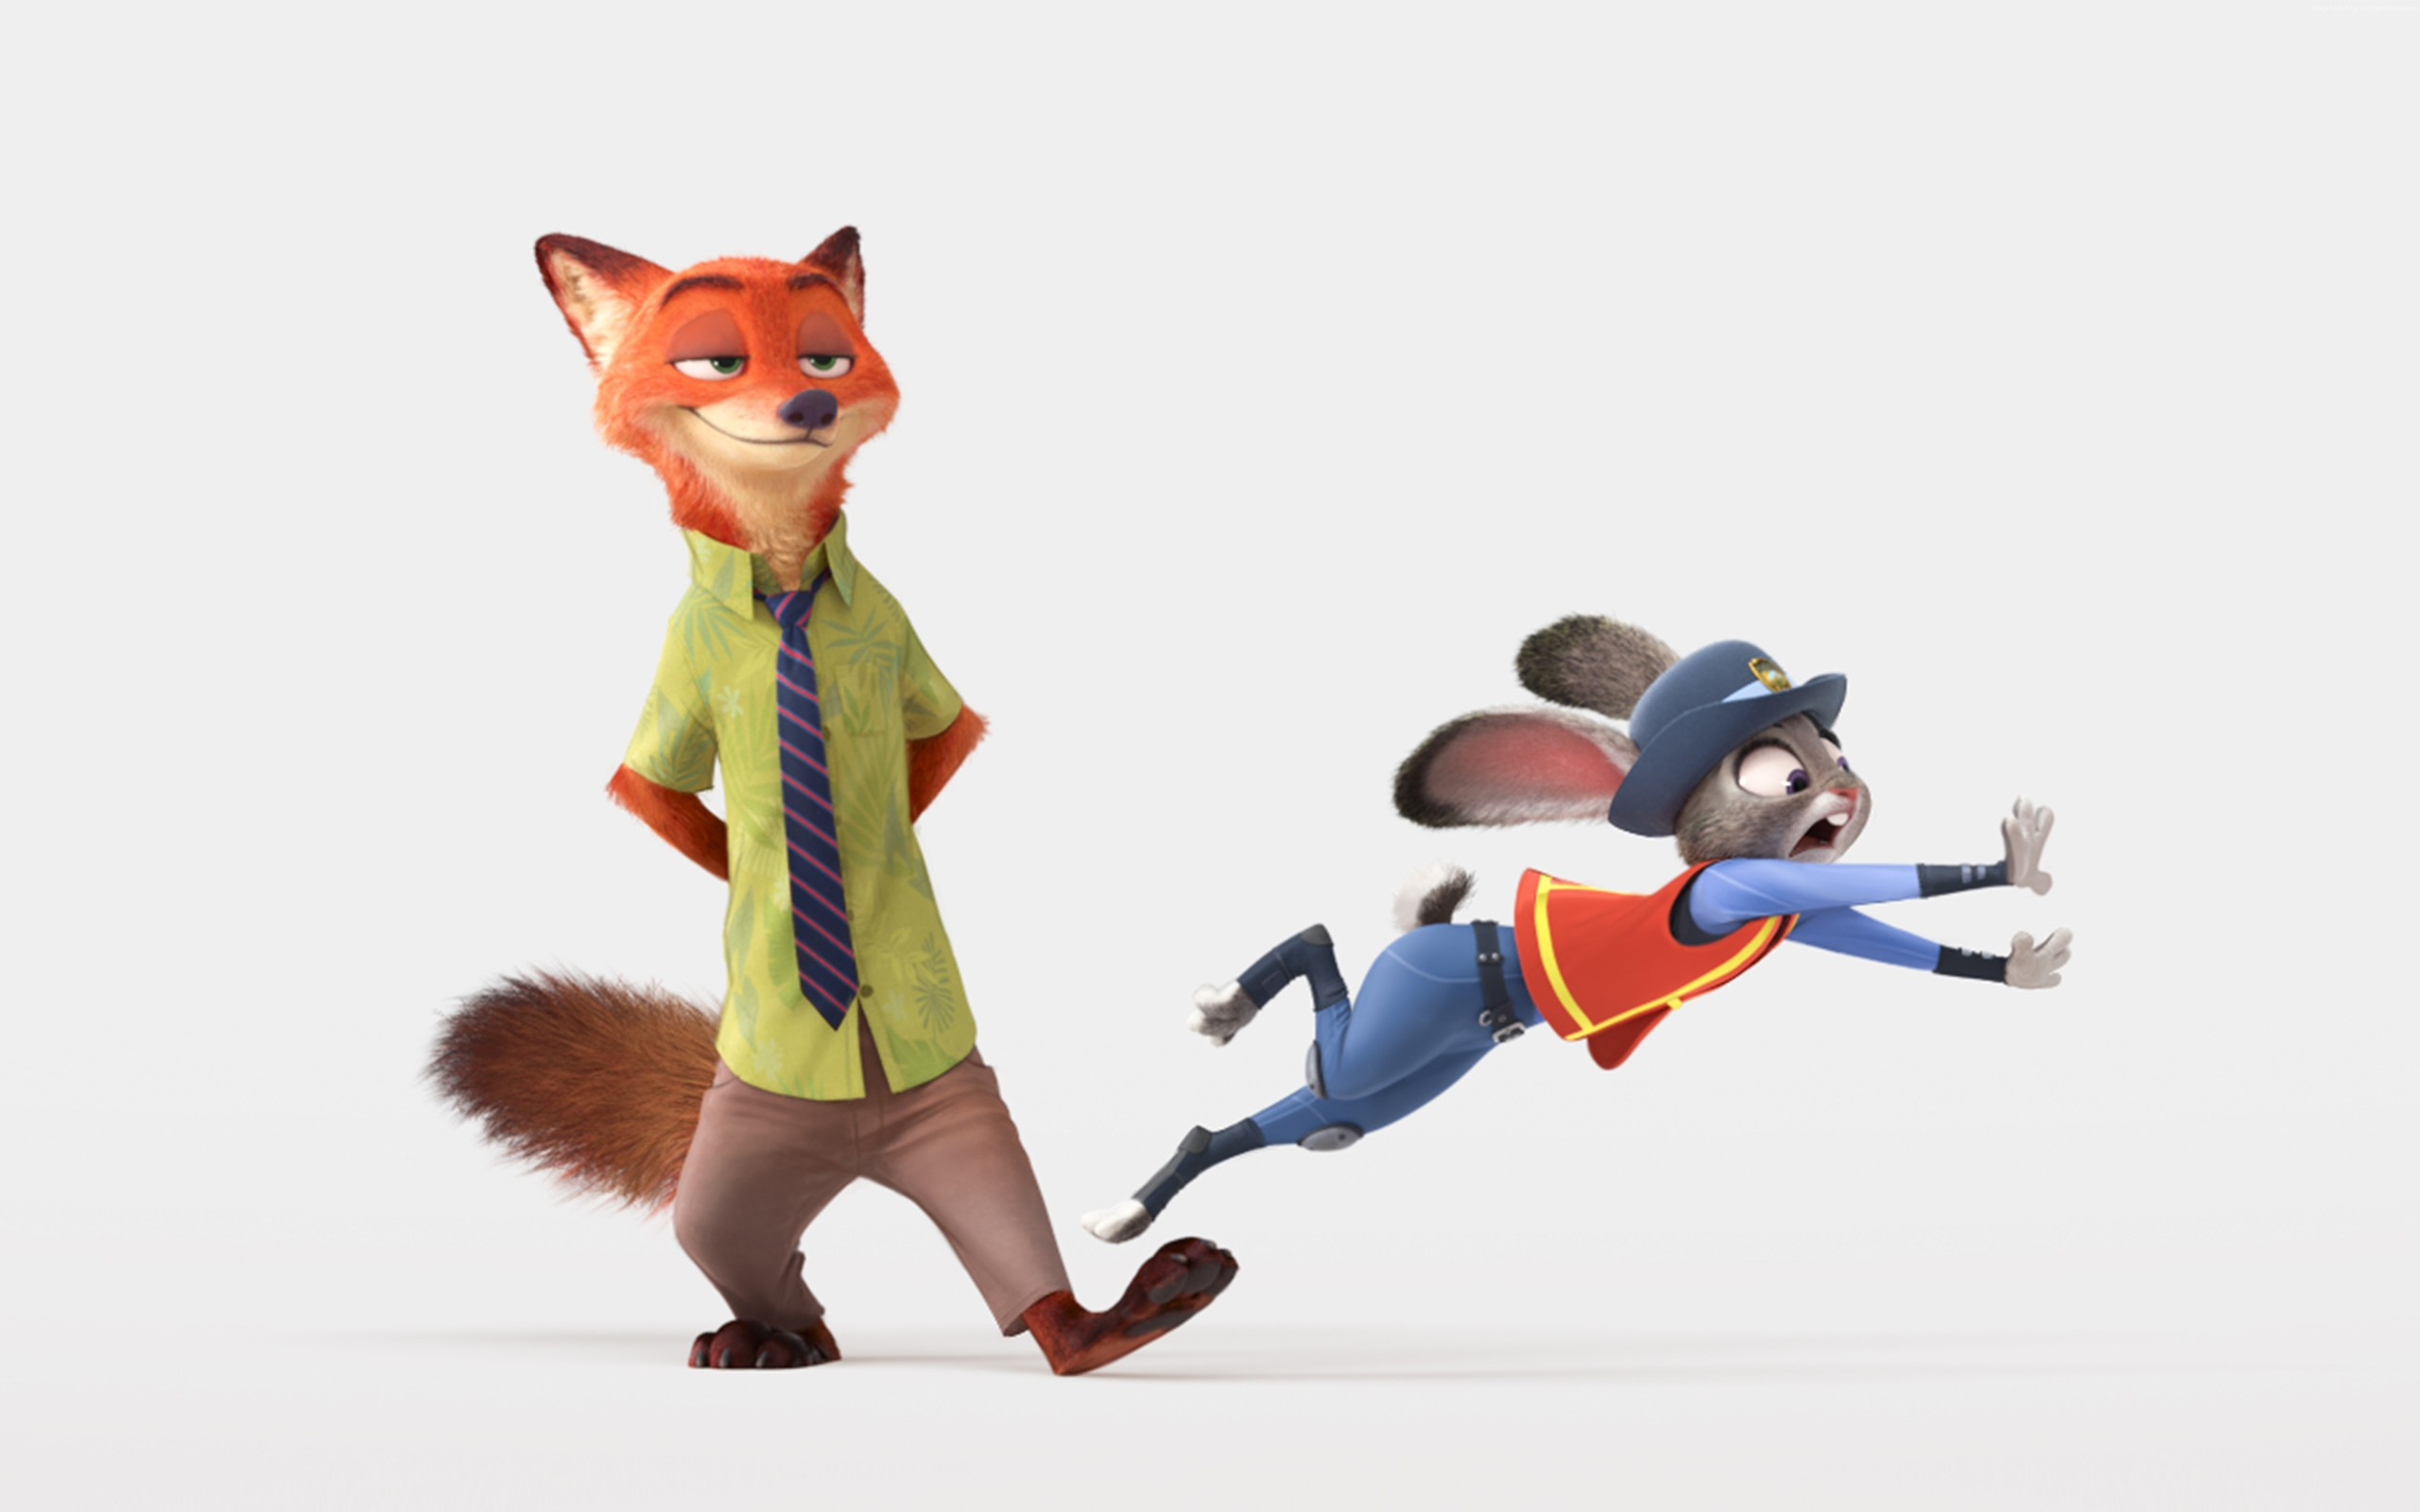 Free Download Zootopia Animation Movies Of 2016 Wallpaper New Hd Wallpapers 2560x1600 For Your Desktop Mobile Tablet Explore 50 New Movie Wallpaper 2016 New Movie Wallpaper 2016 New Movie Wallpaper New Wallpaper 2016